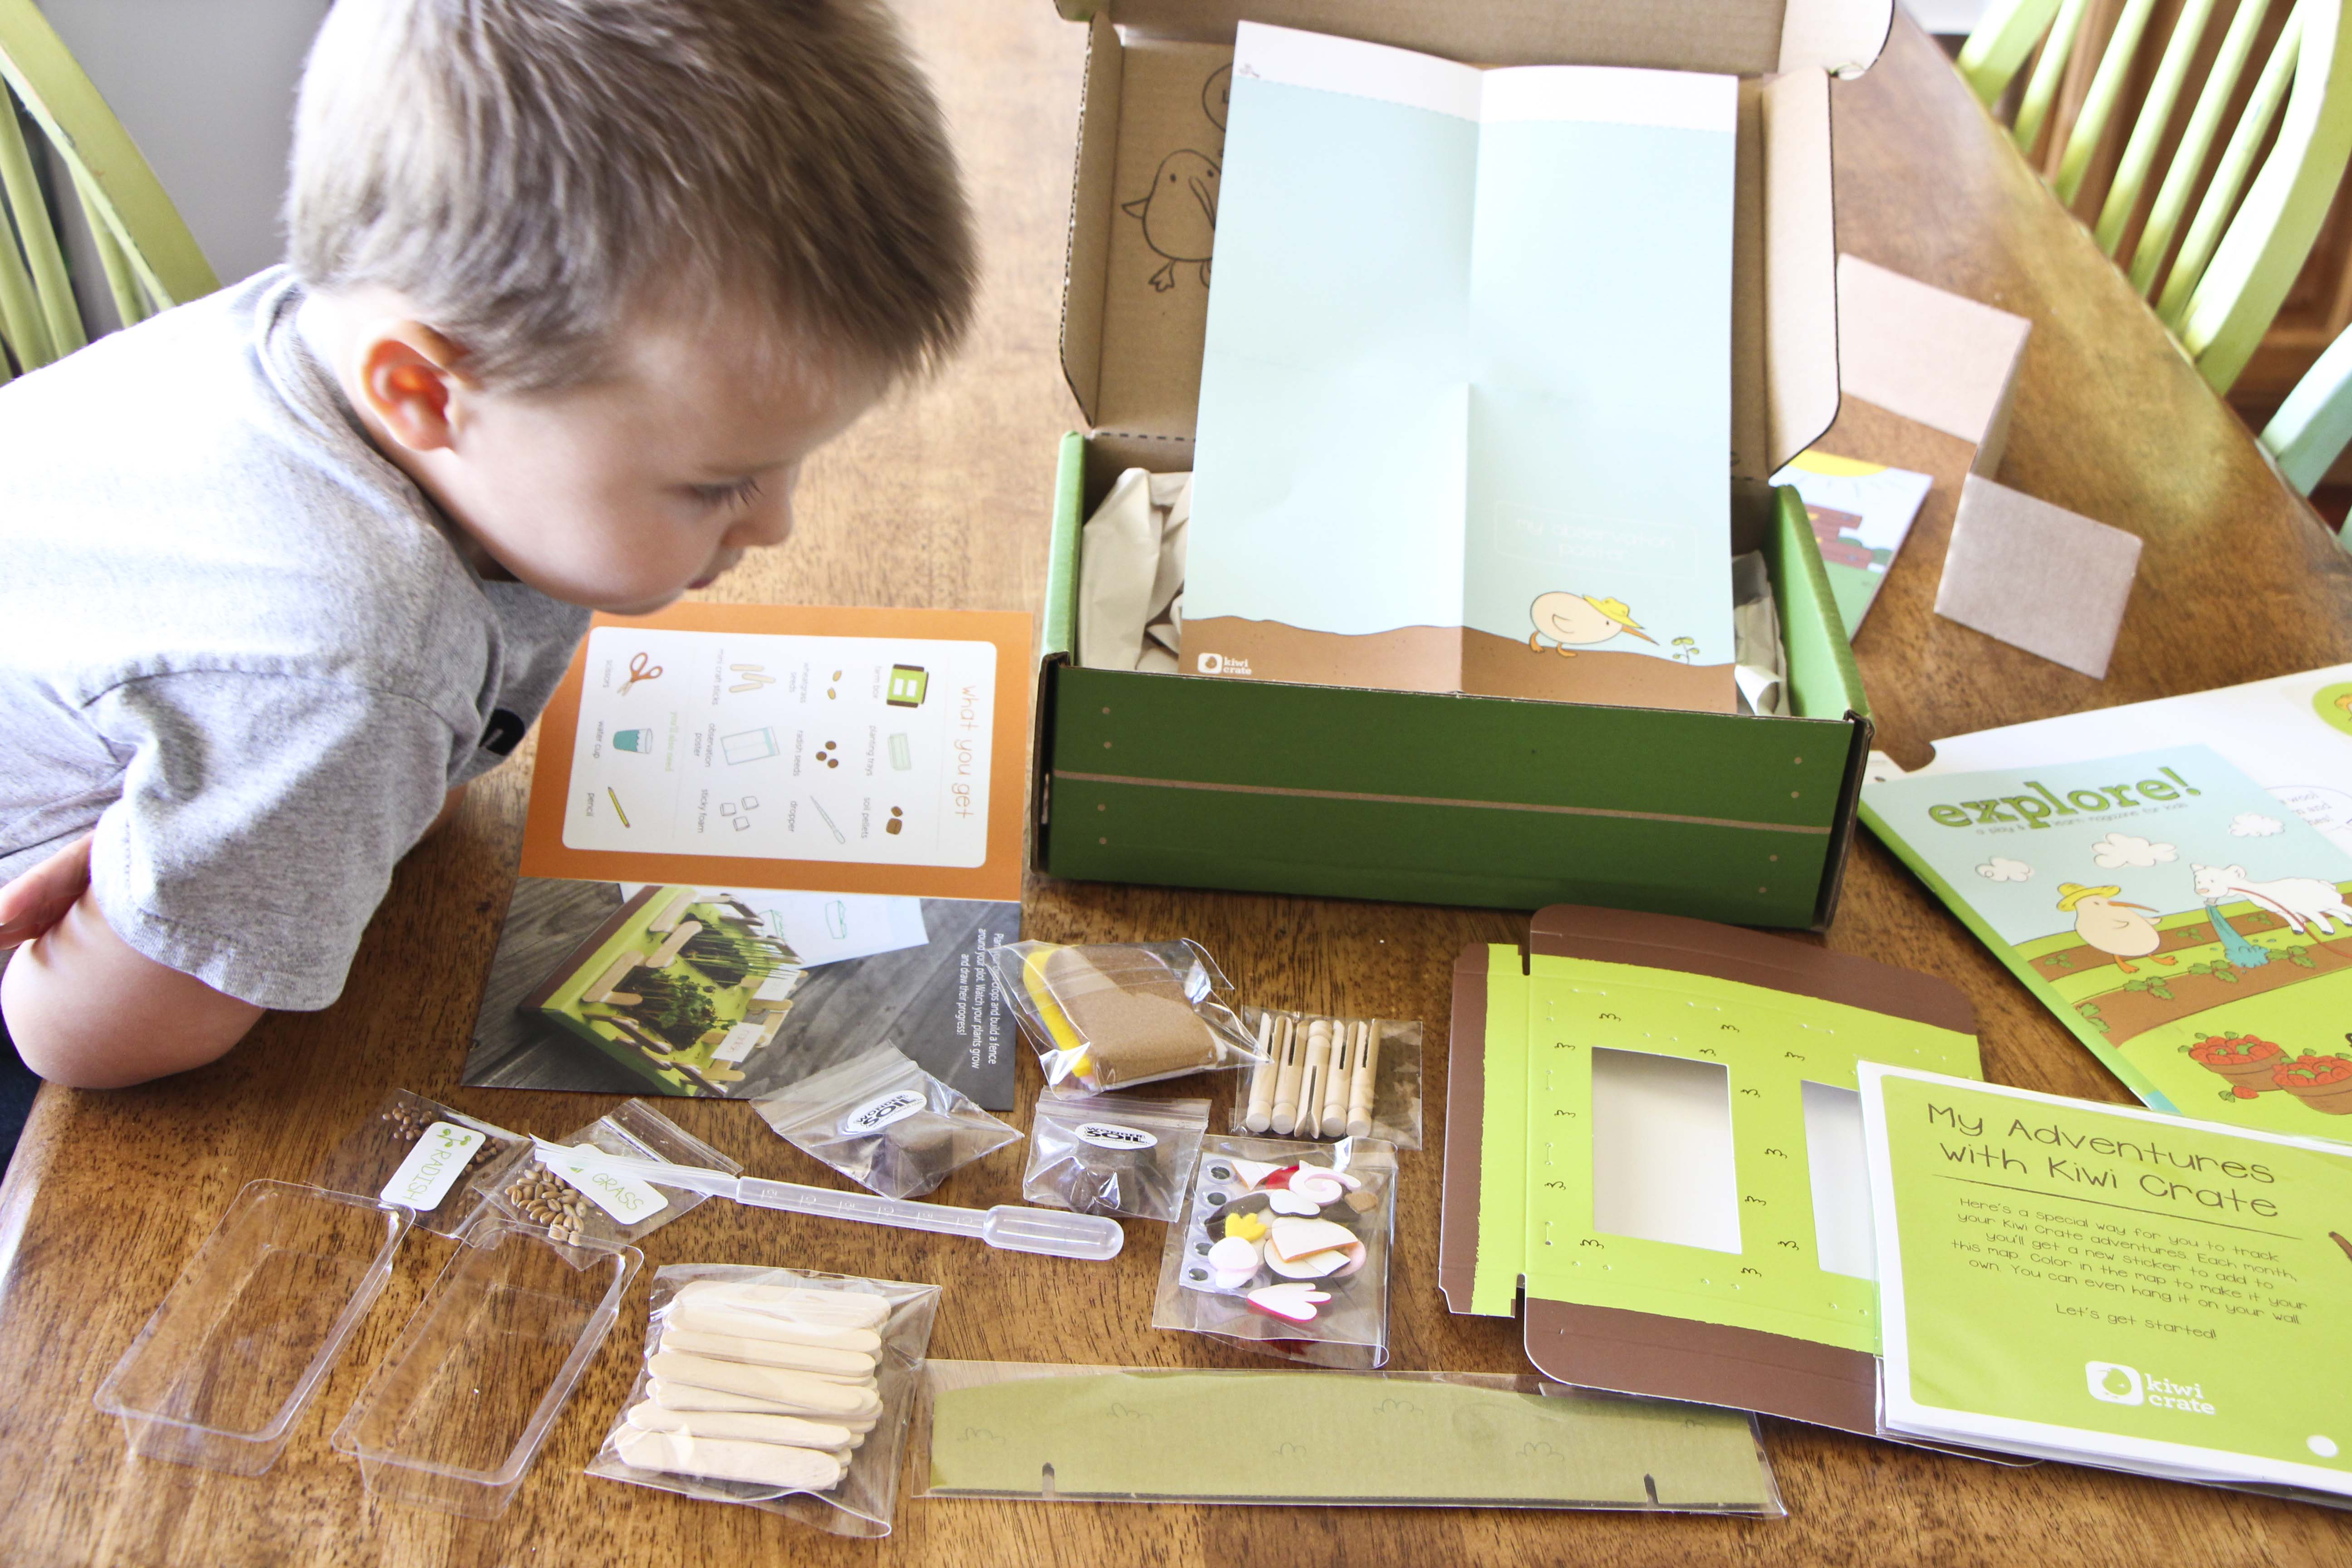 Craft kits for 4 year olds - I Was Literally Blown Away By How Awesome This Kit Was It S Super Cute Perfect For Kids To Do And Very Imaginative And Creative And There S Tons To Do